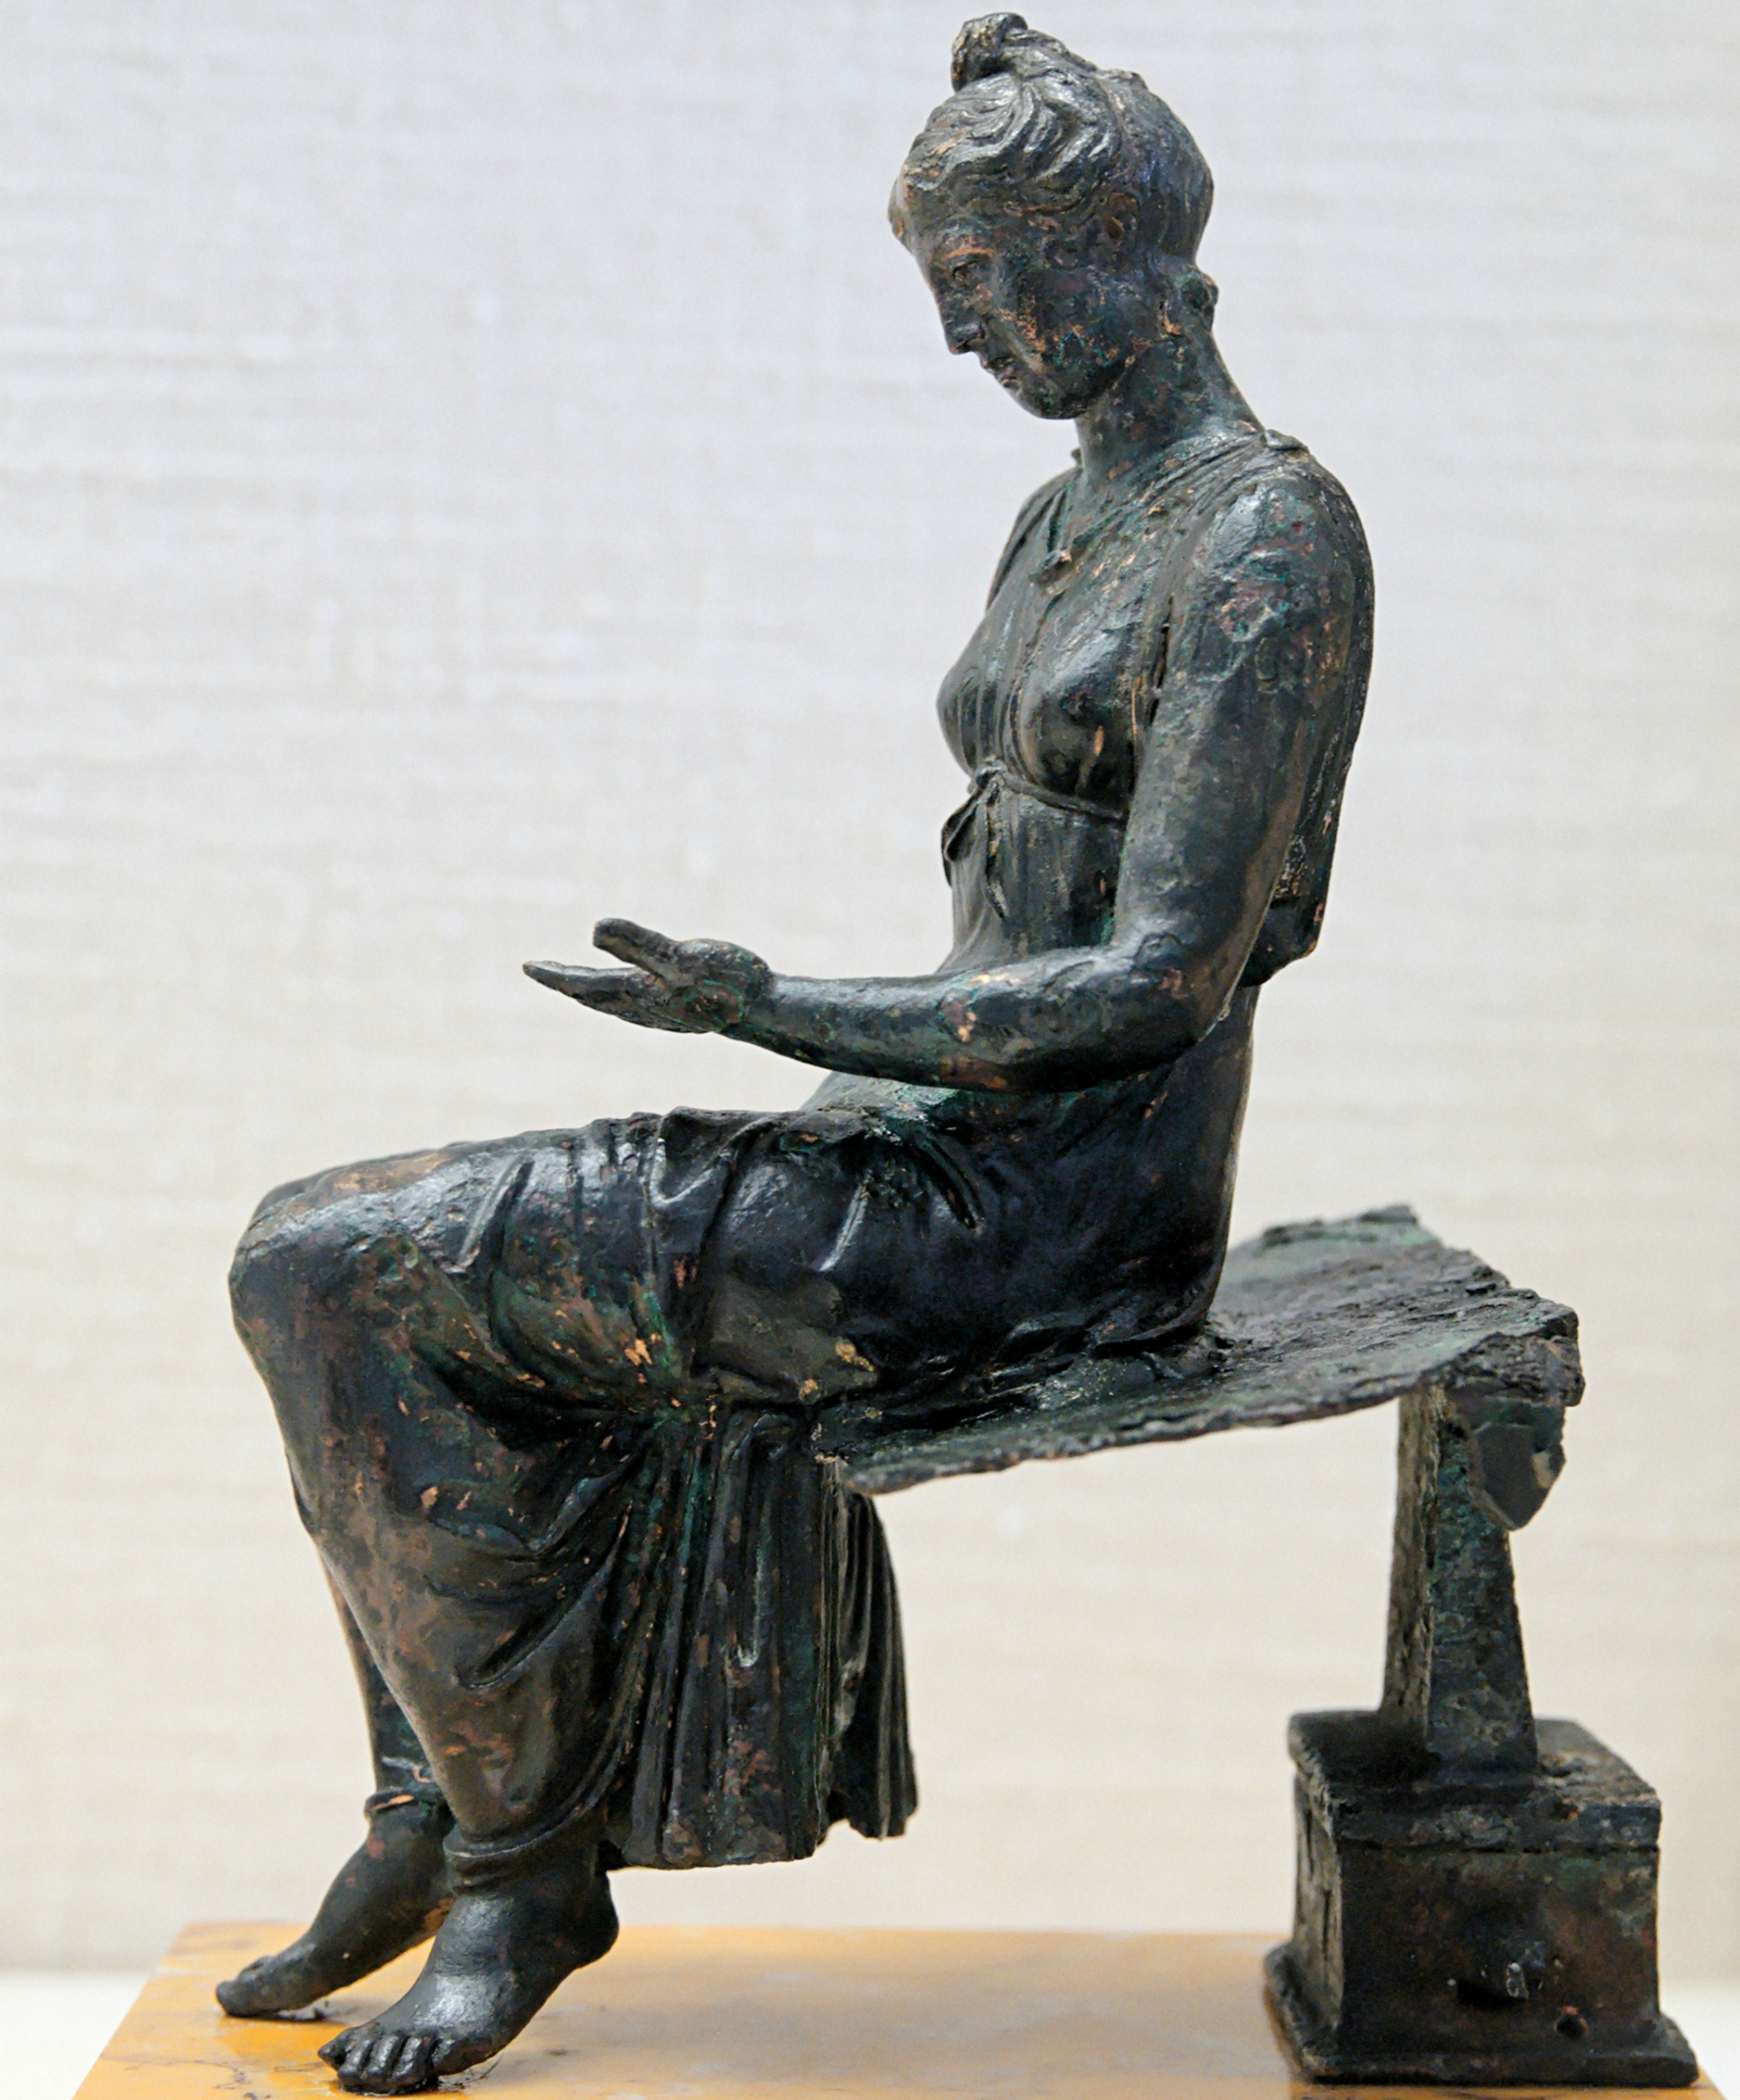 Bronze statue of a young girl reading  Photo: Unknown Français: Anonyme (Marie-Lan Nguyen (User:Jastrow), 2008-04-11) [CC BY 2.5 (http://creativecommons.org/licenses/by/2.5)], via Wikimedia Commons